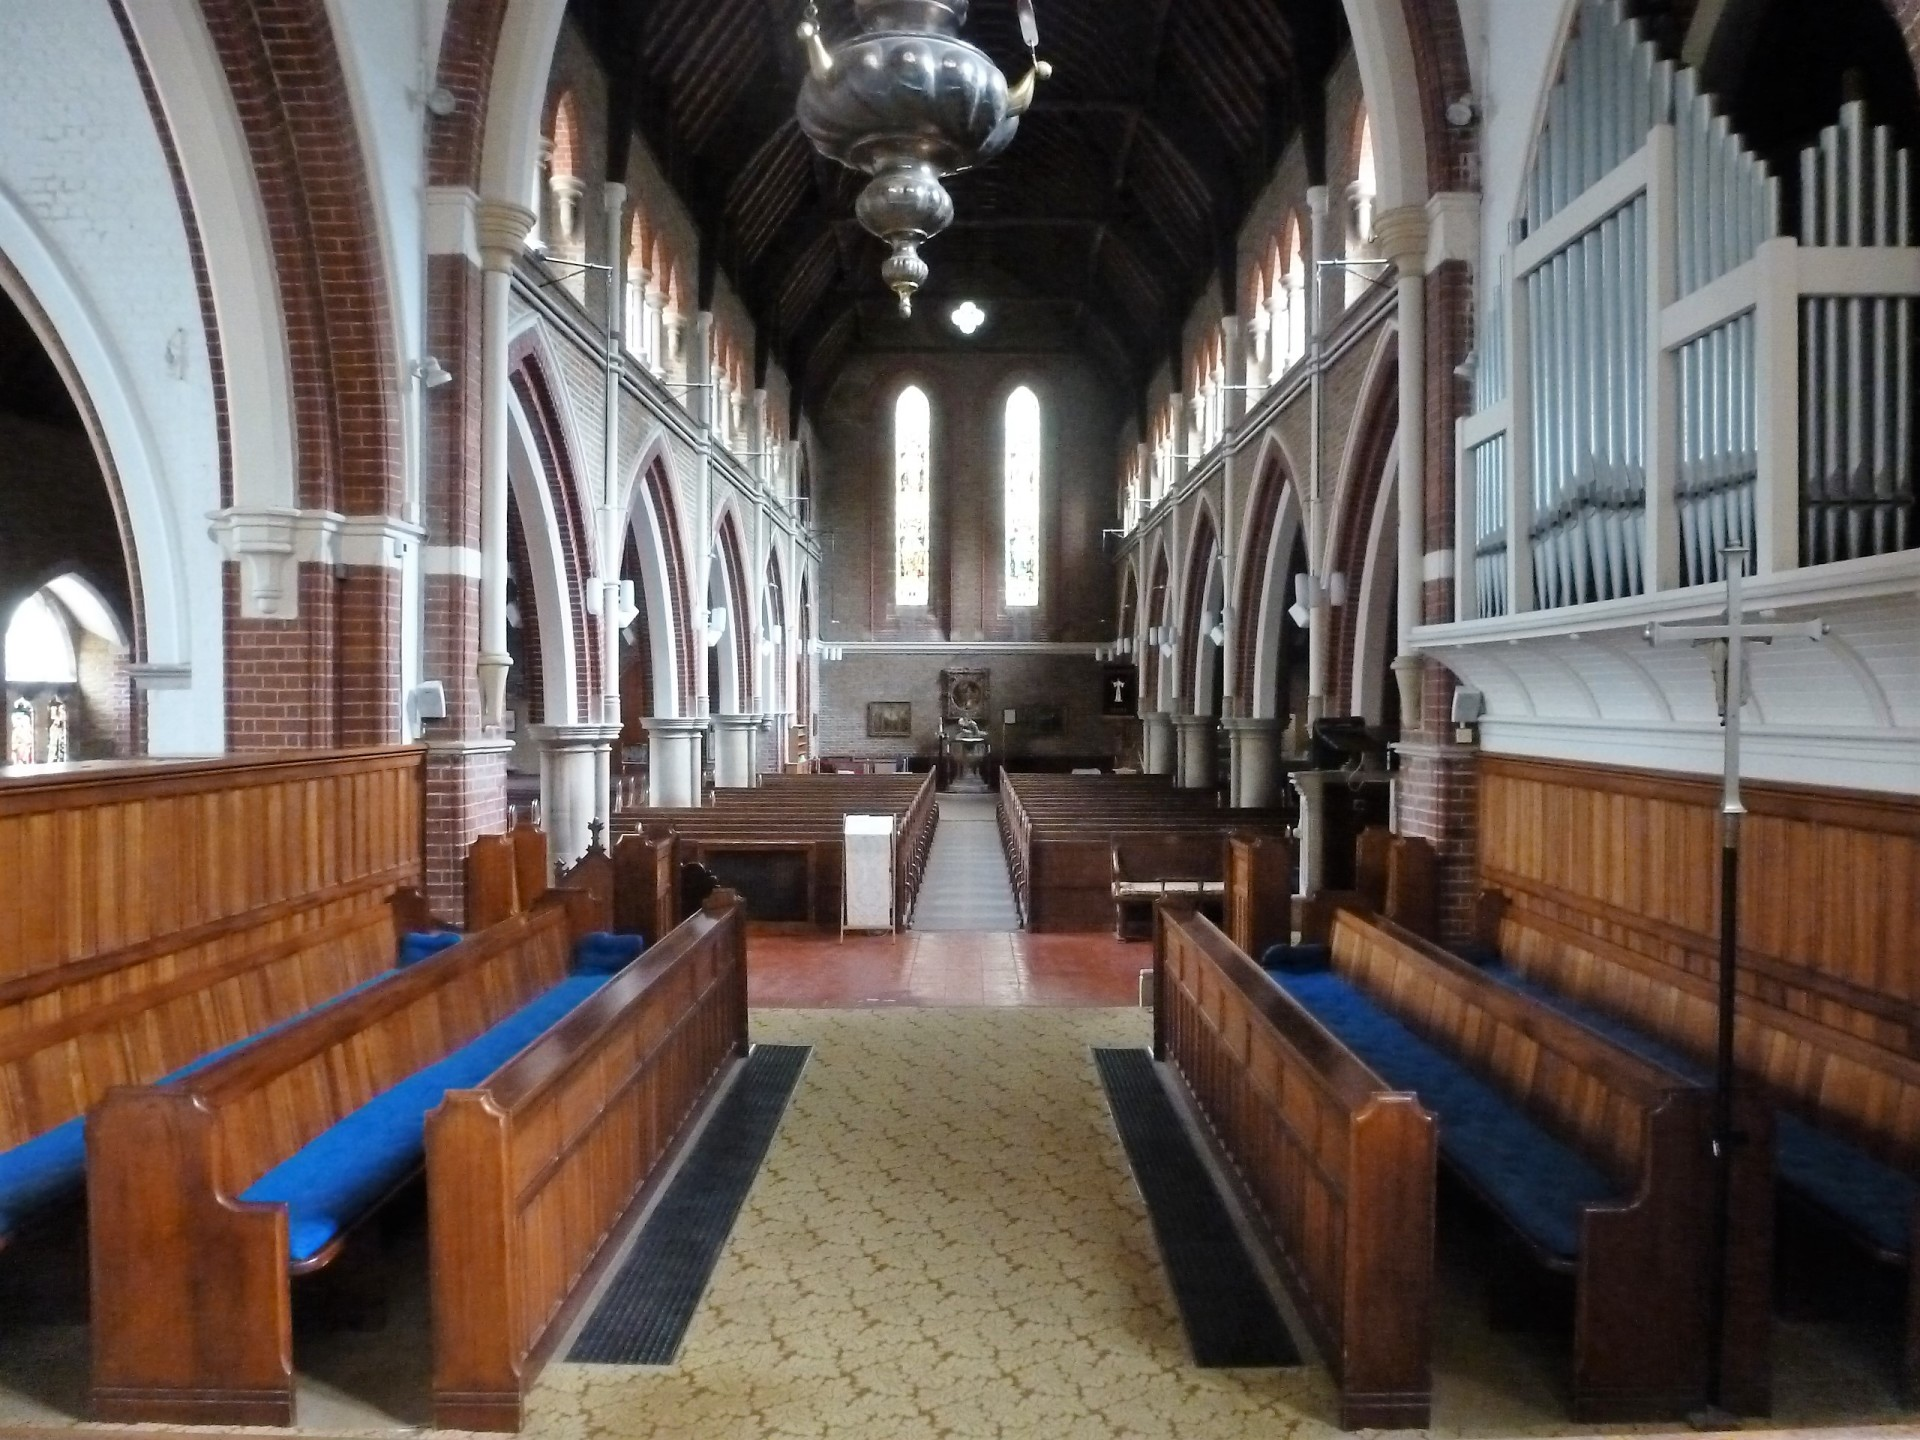 Interior view of St. Botolph's, Heene